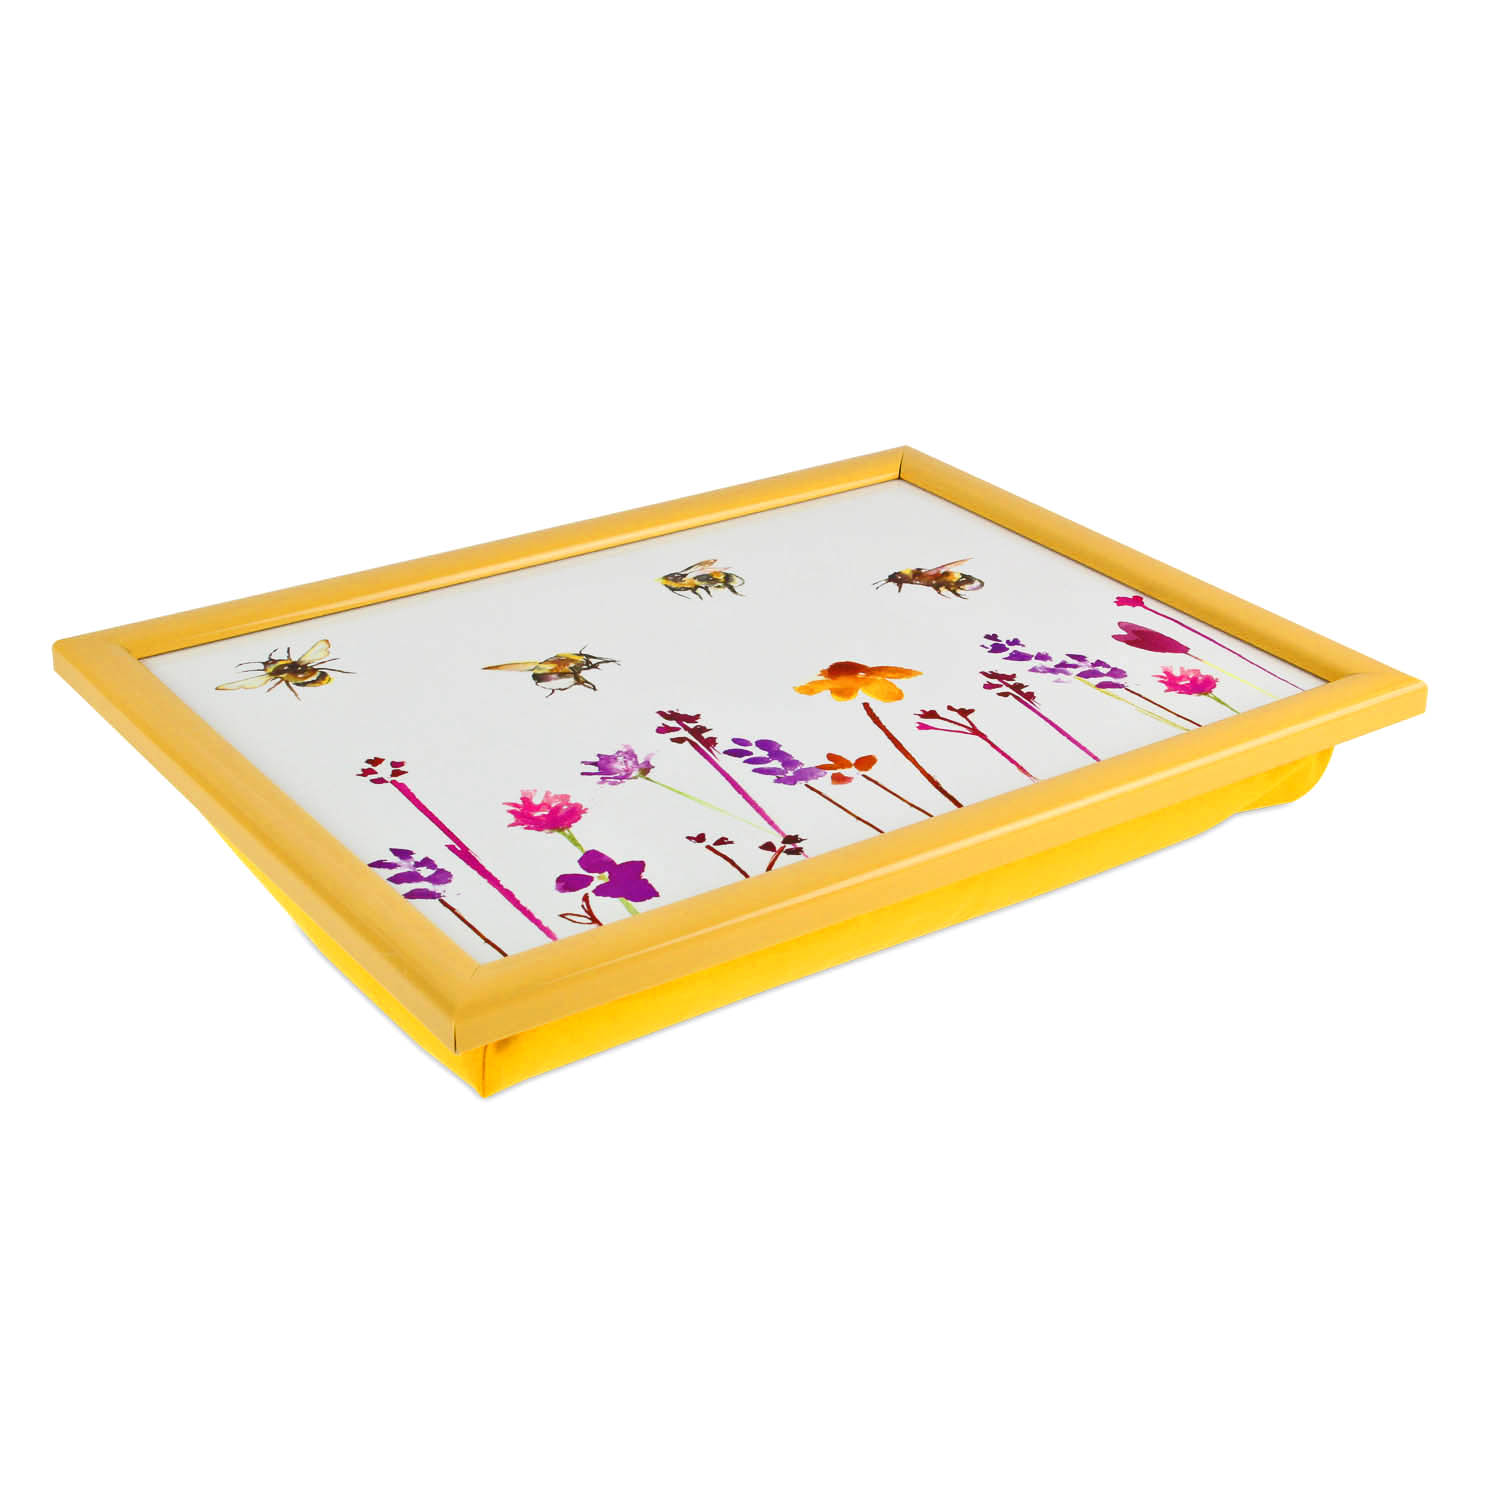 Busy Bees Large Lap Tray